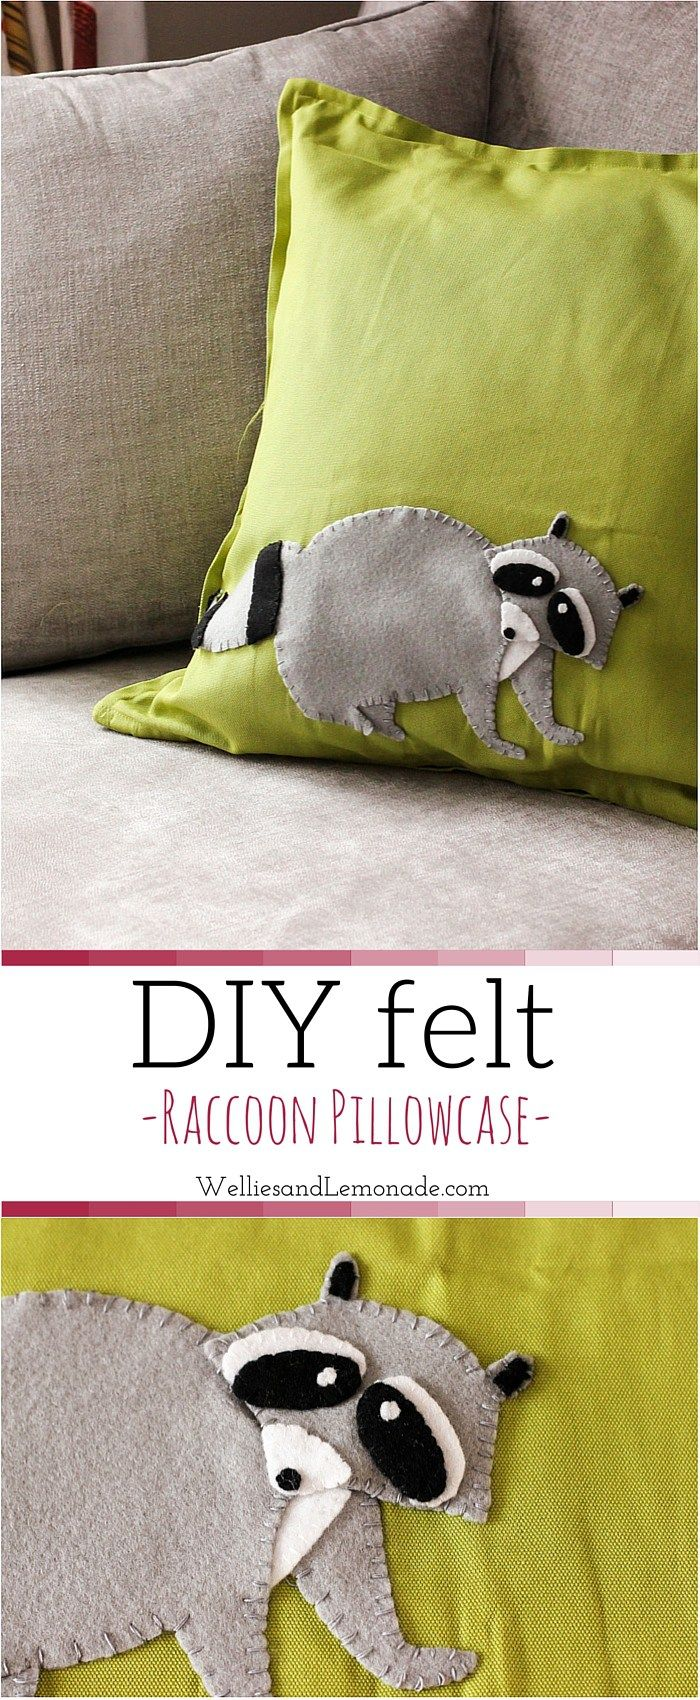 Easy raccoon craft cushion case which you can   make for your little one. Find more felt craft tutorials at http://www.welliesandlemonade.com